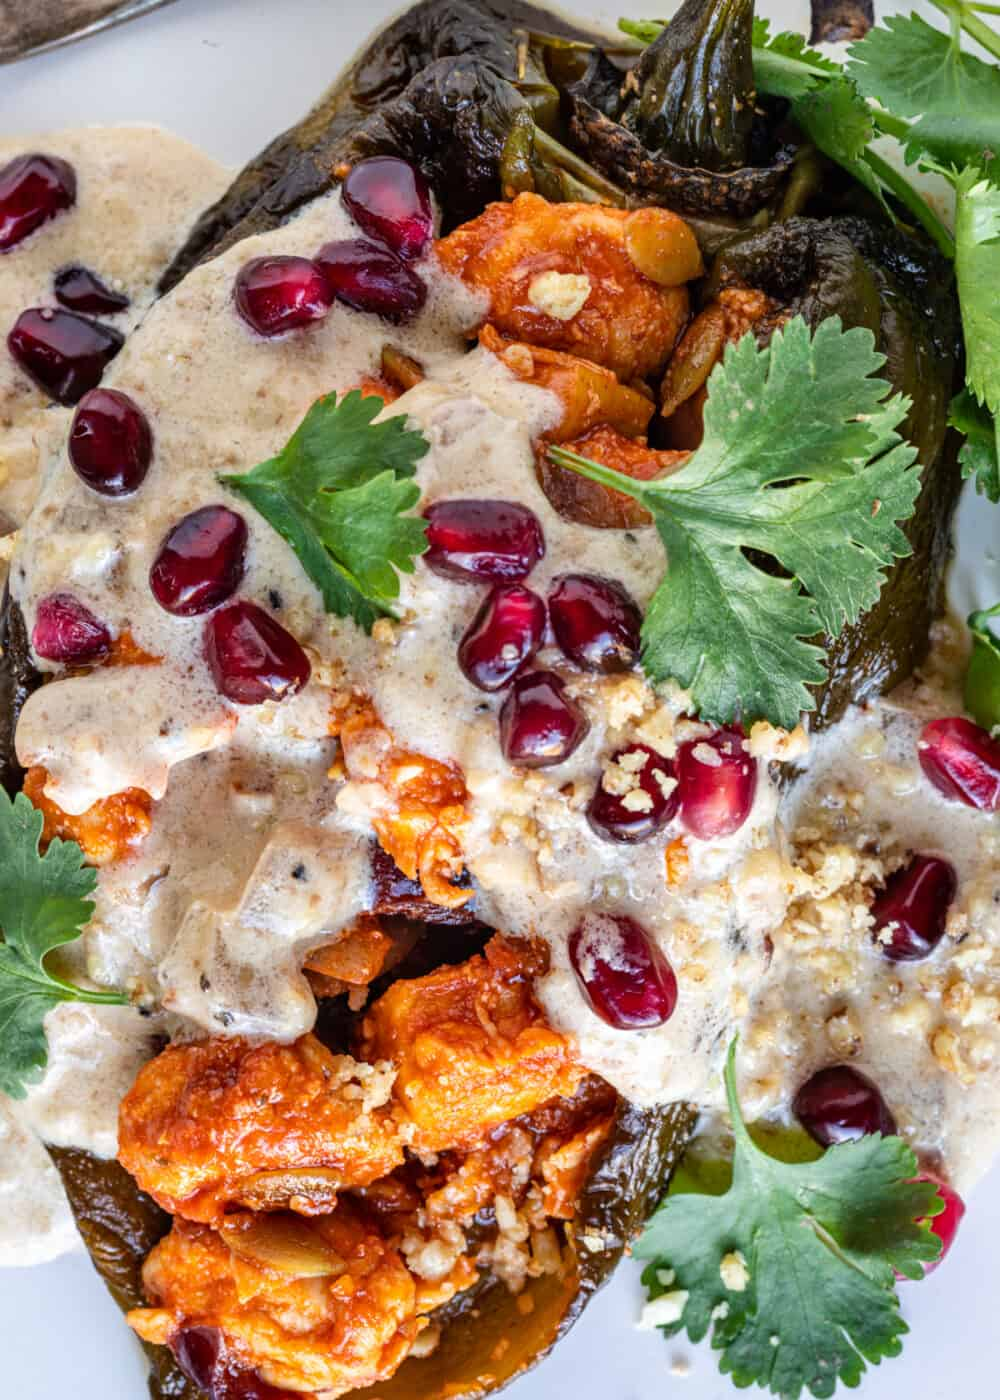 roasted chiles stuffed with chicken, fruit and vegetables, covered in walnut sauce